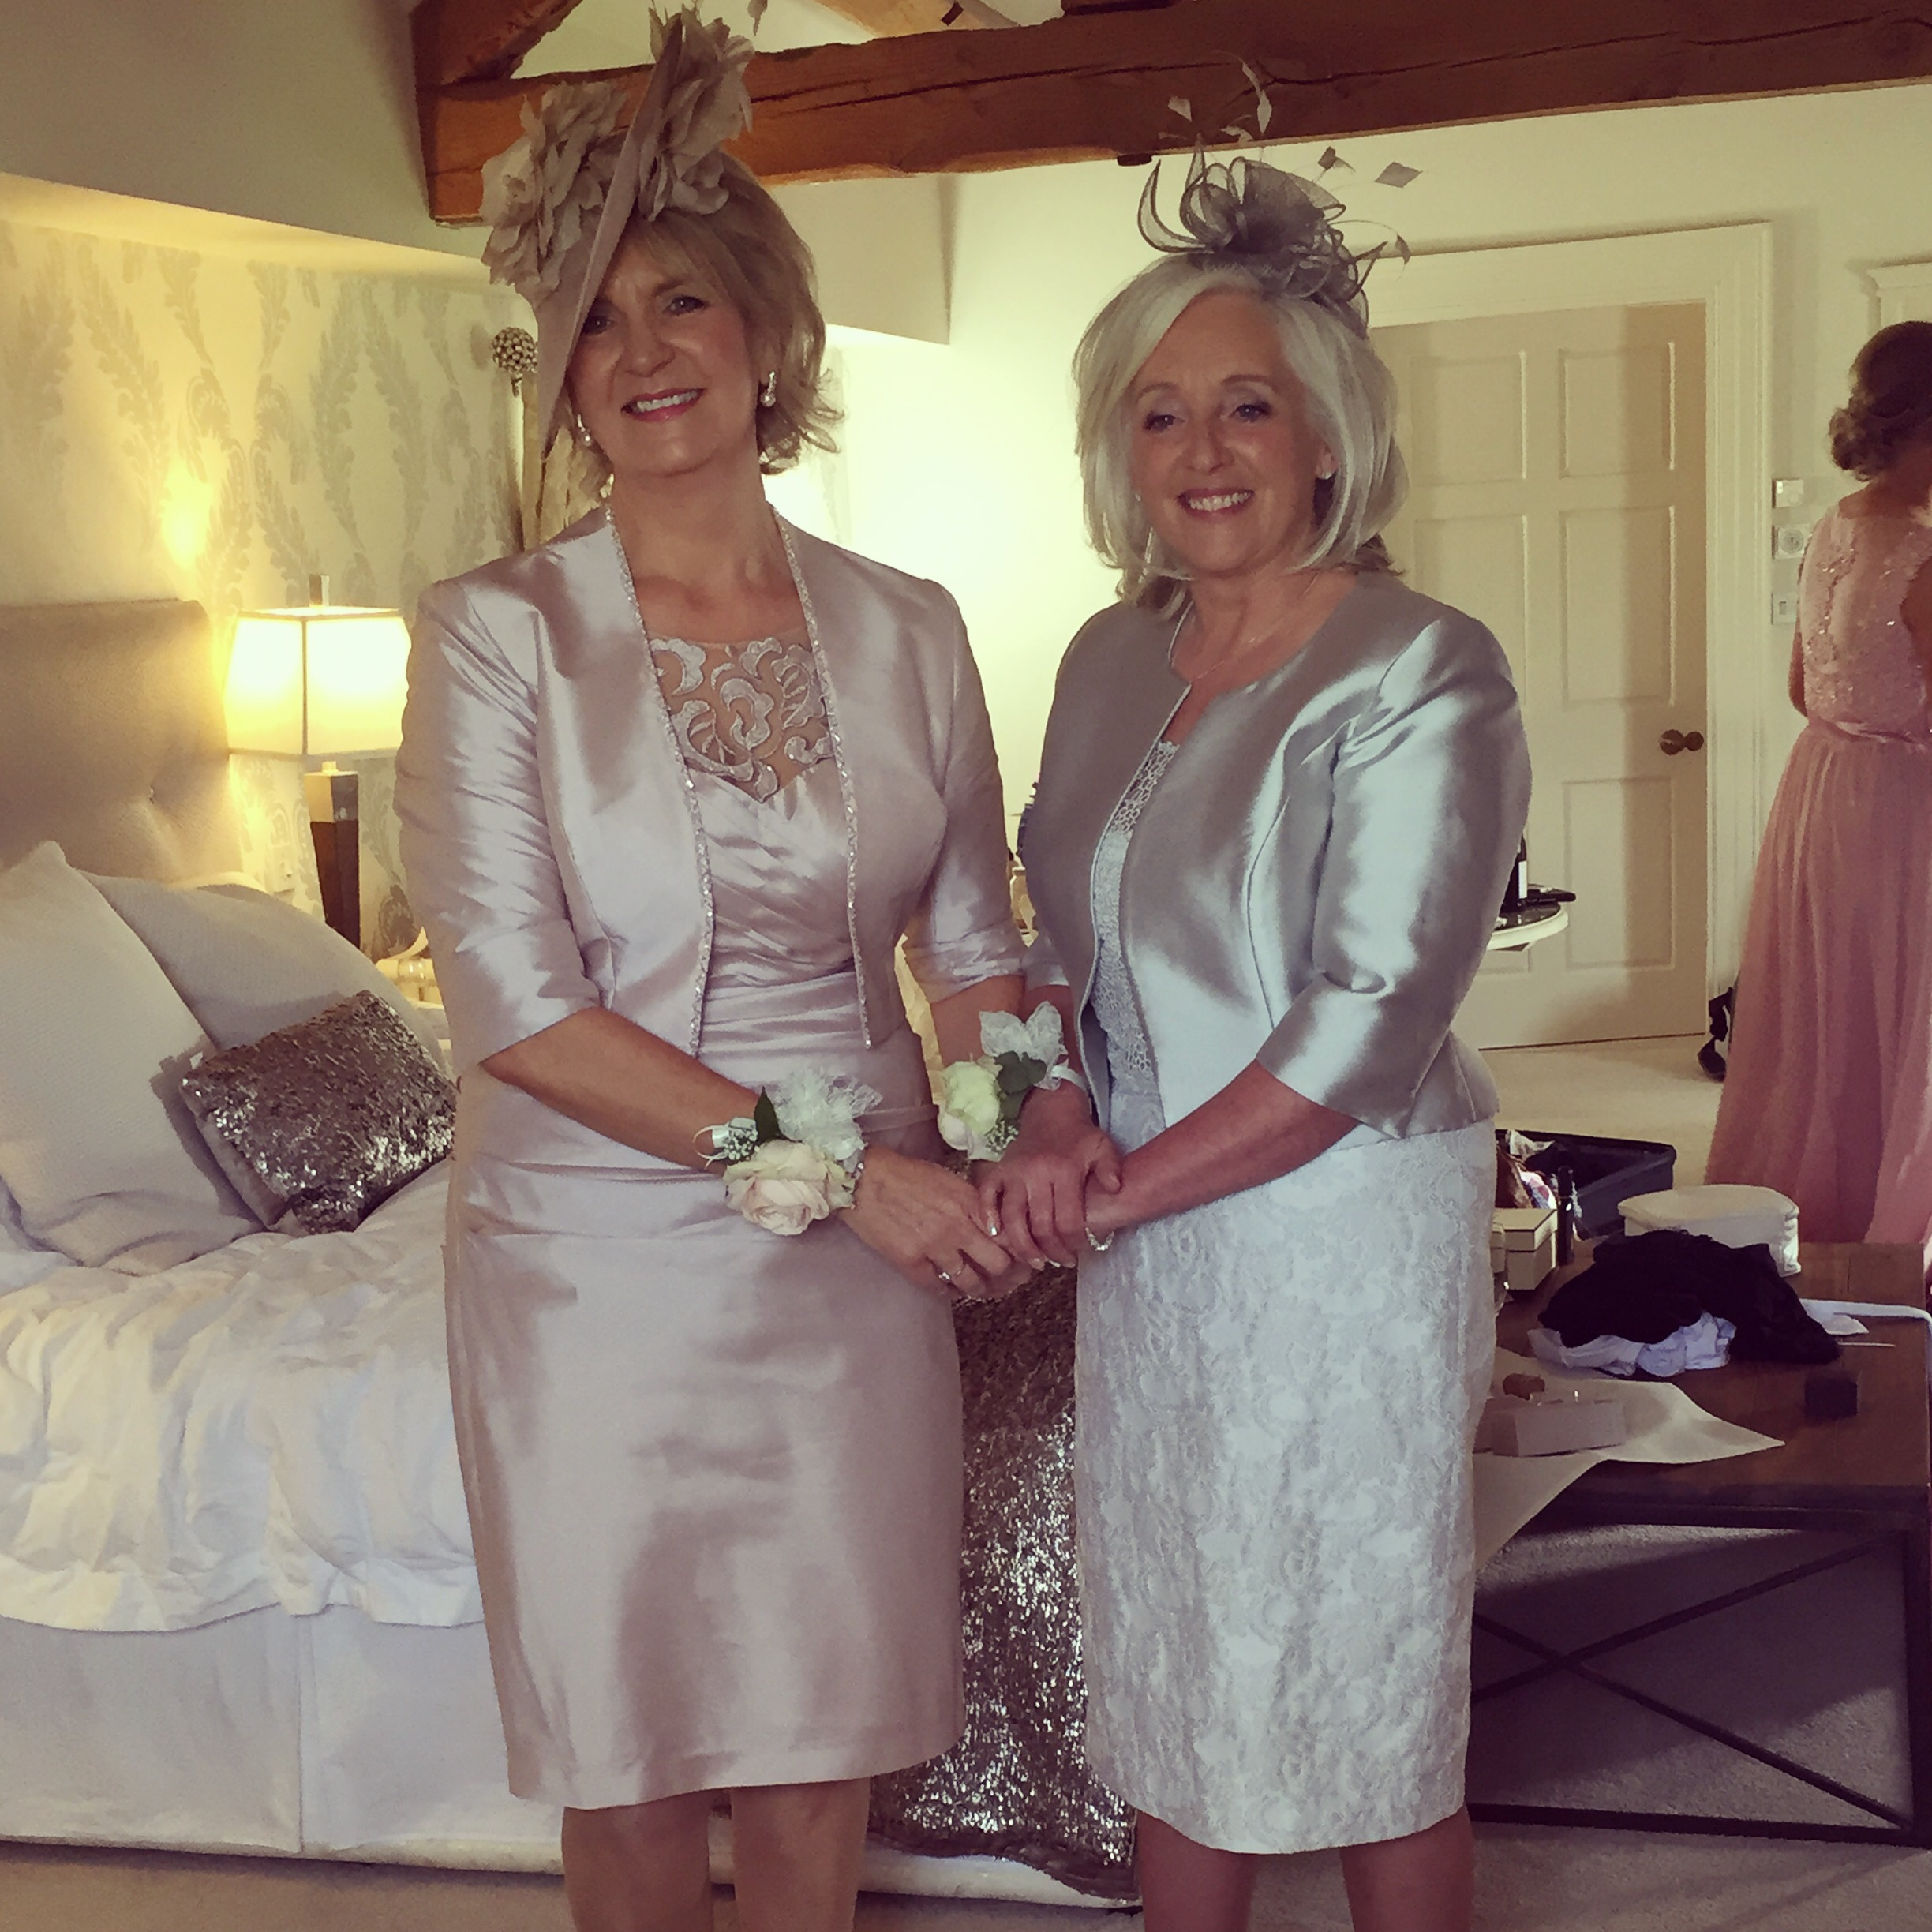 Sue (mother of the bride) & Jane (mother of the groom) looking flawless and feeling fabulous!